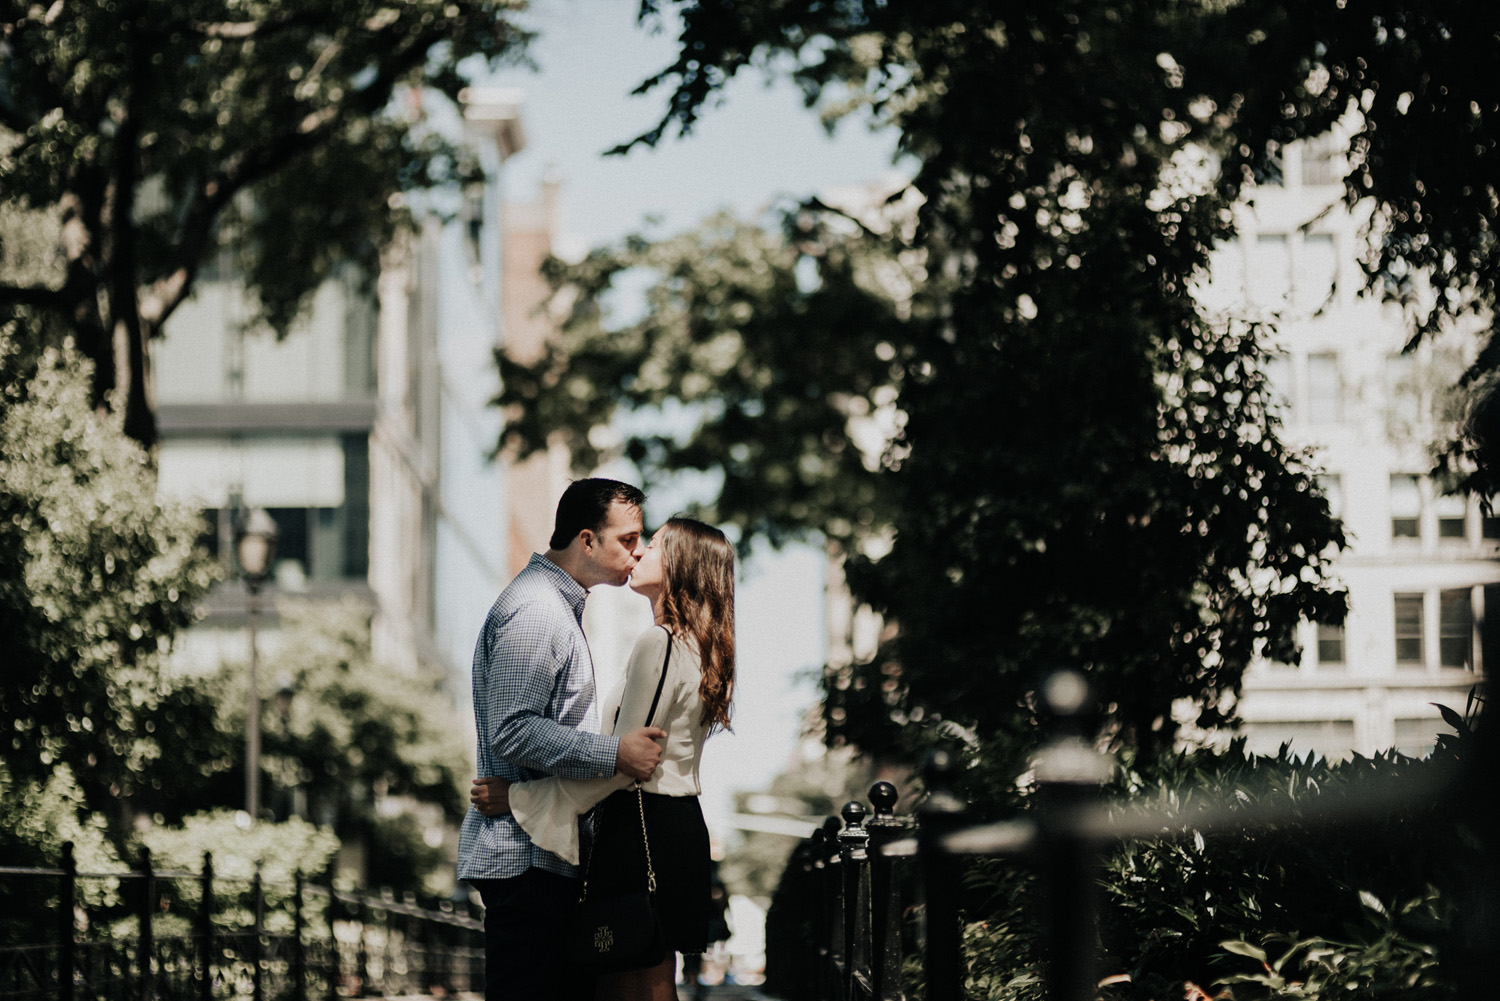 KyleWillisPhoto-Union-Square-Park-Wedding-Proposal-Photos-Engagement-New-York-City